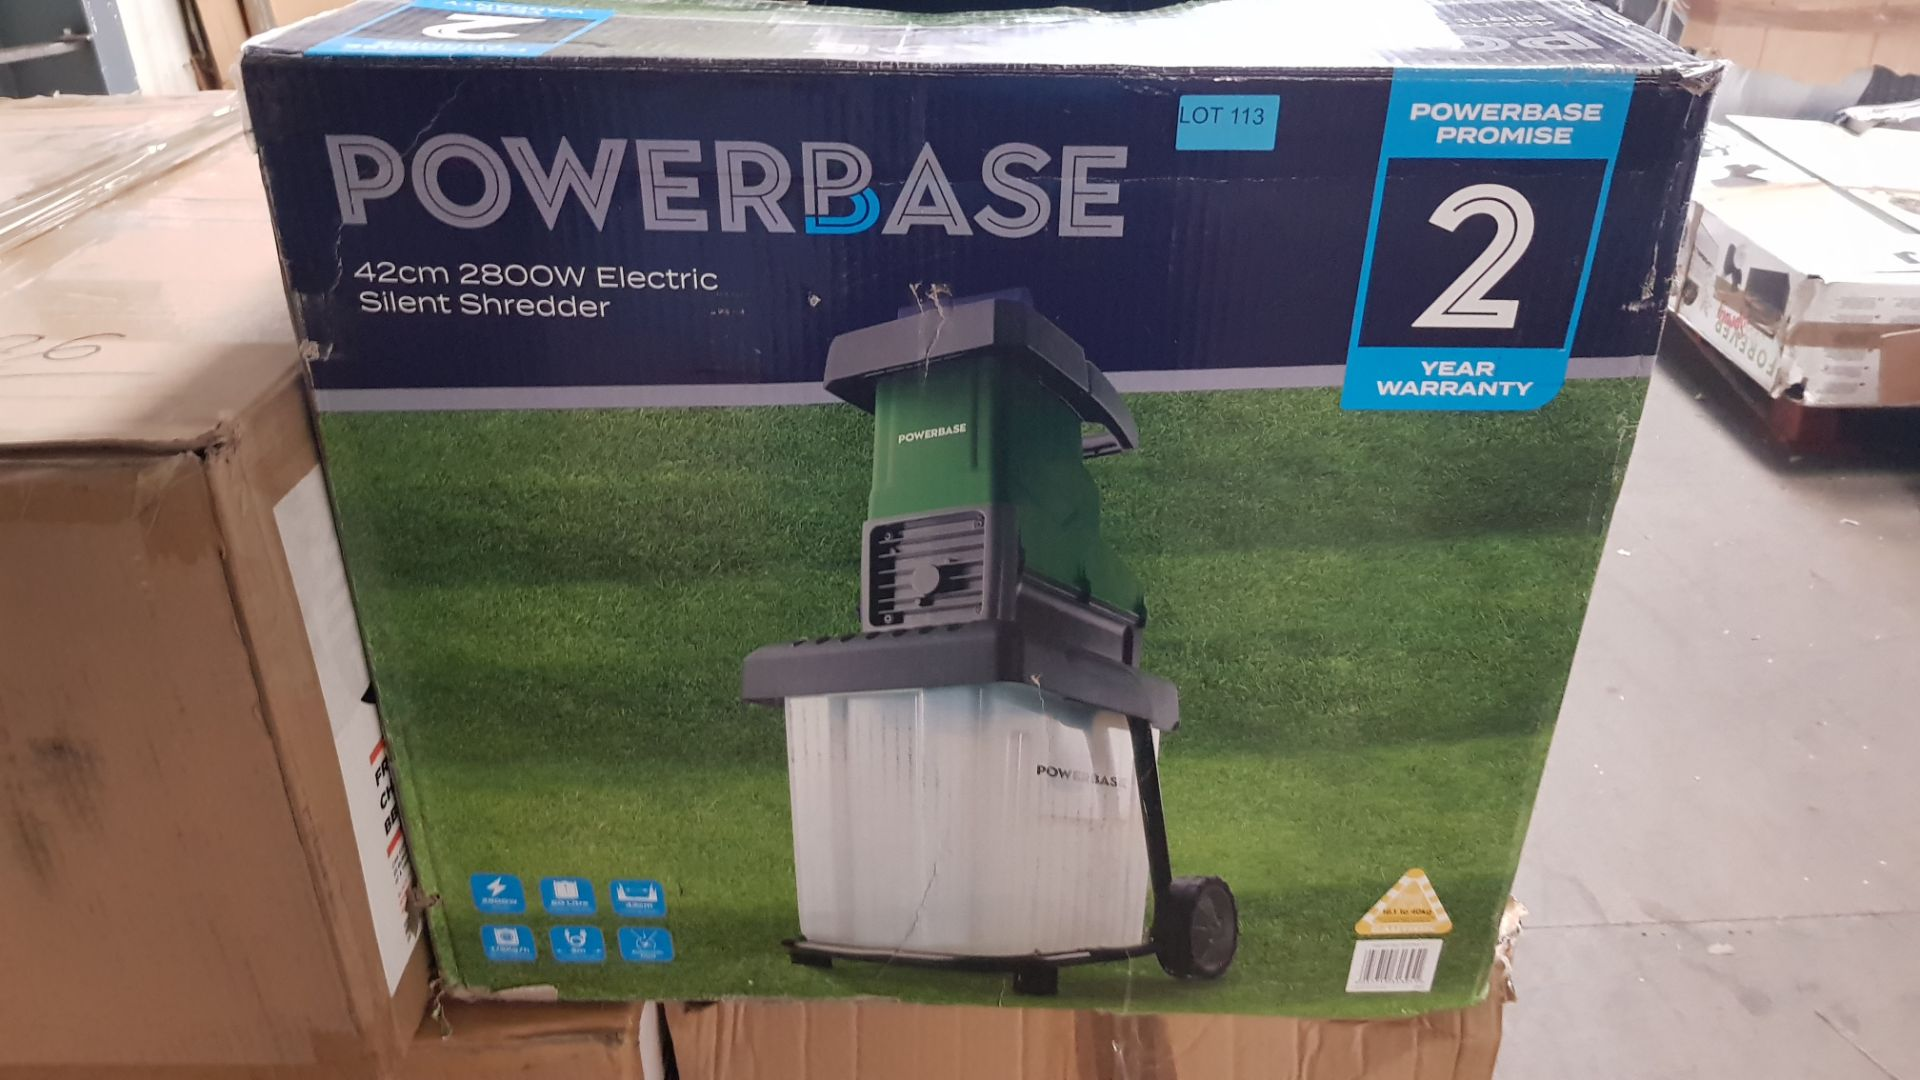 (P3) 1x Powerbase 42cm 2800W Electric Silent Shredder. RRP £175.00. Unit Appears Clean, Unused With - Image 3 of 5